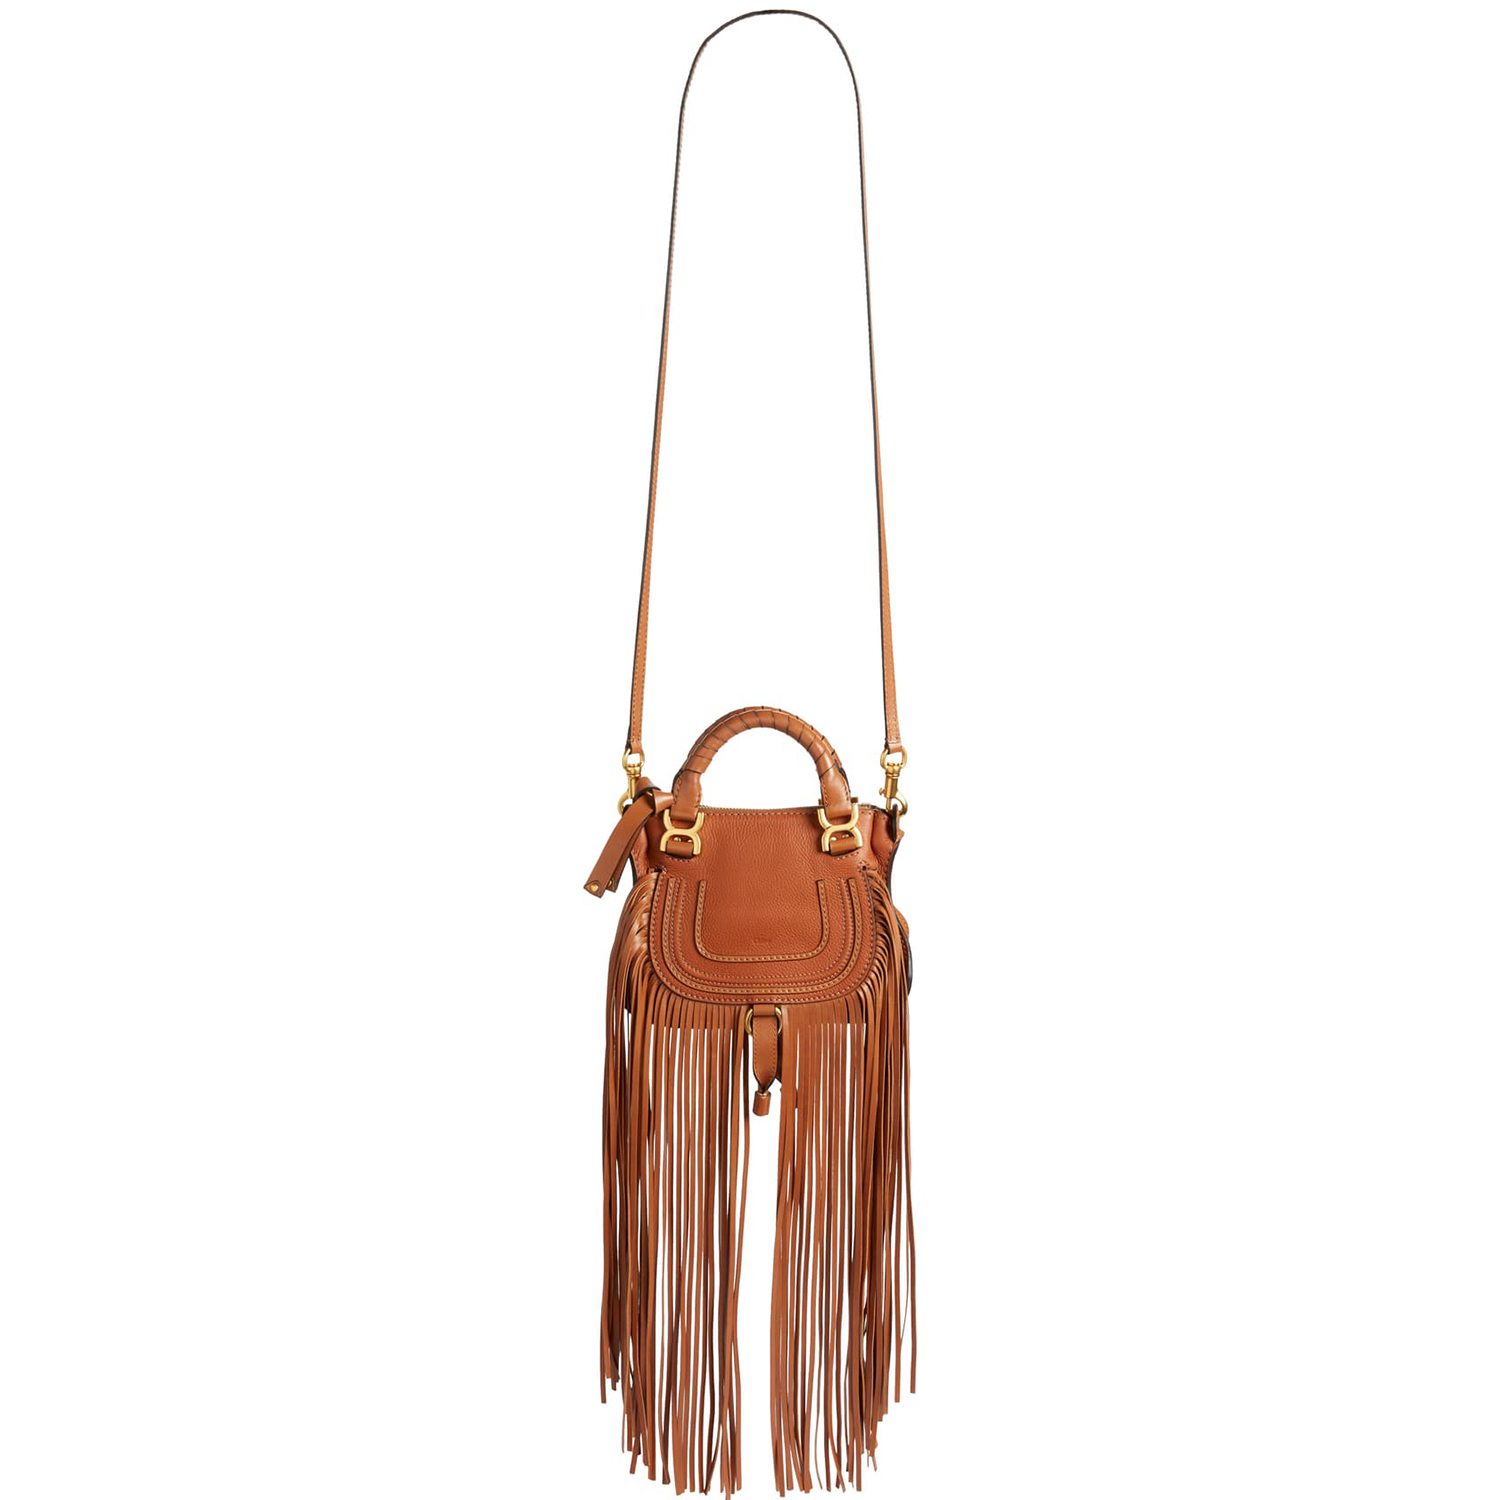 Chloé Mini Marcie Fringe Leather Crossbody Bag